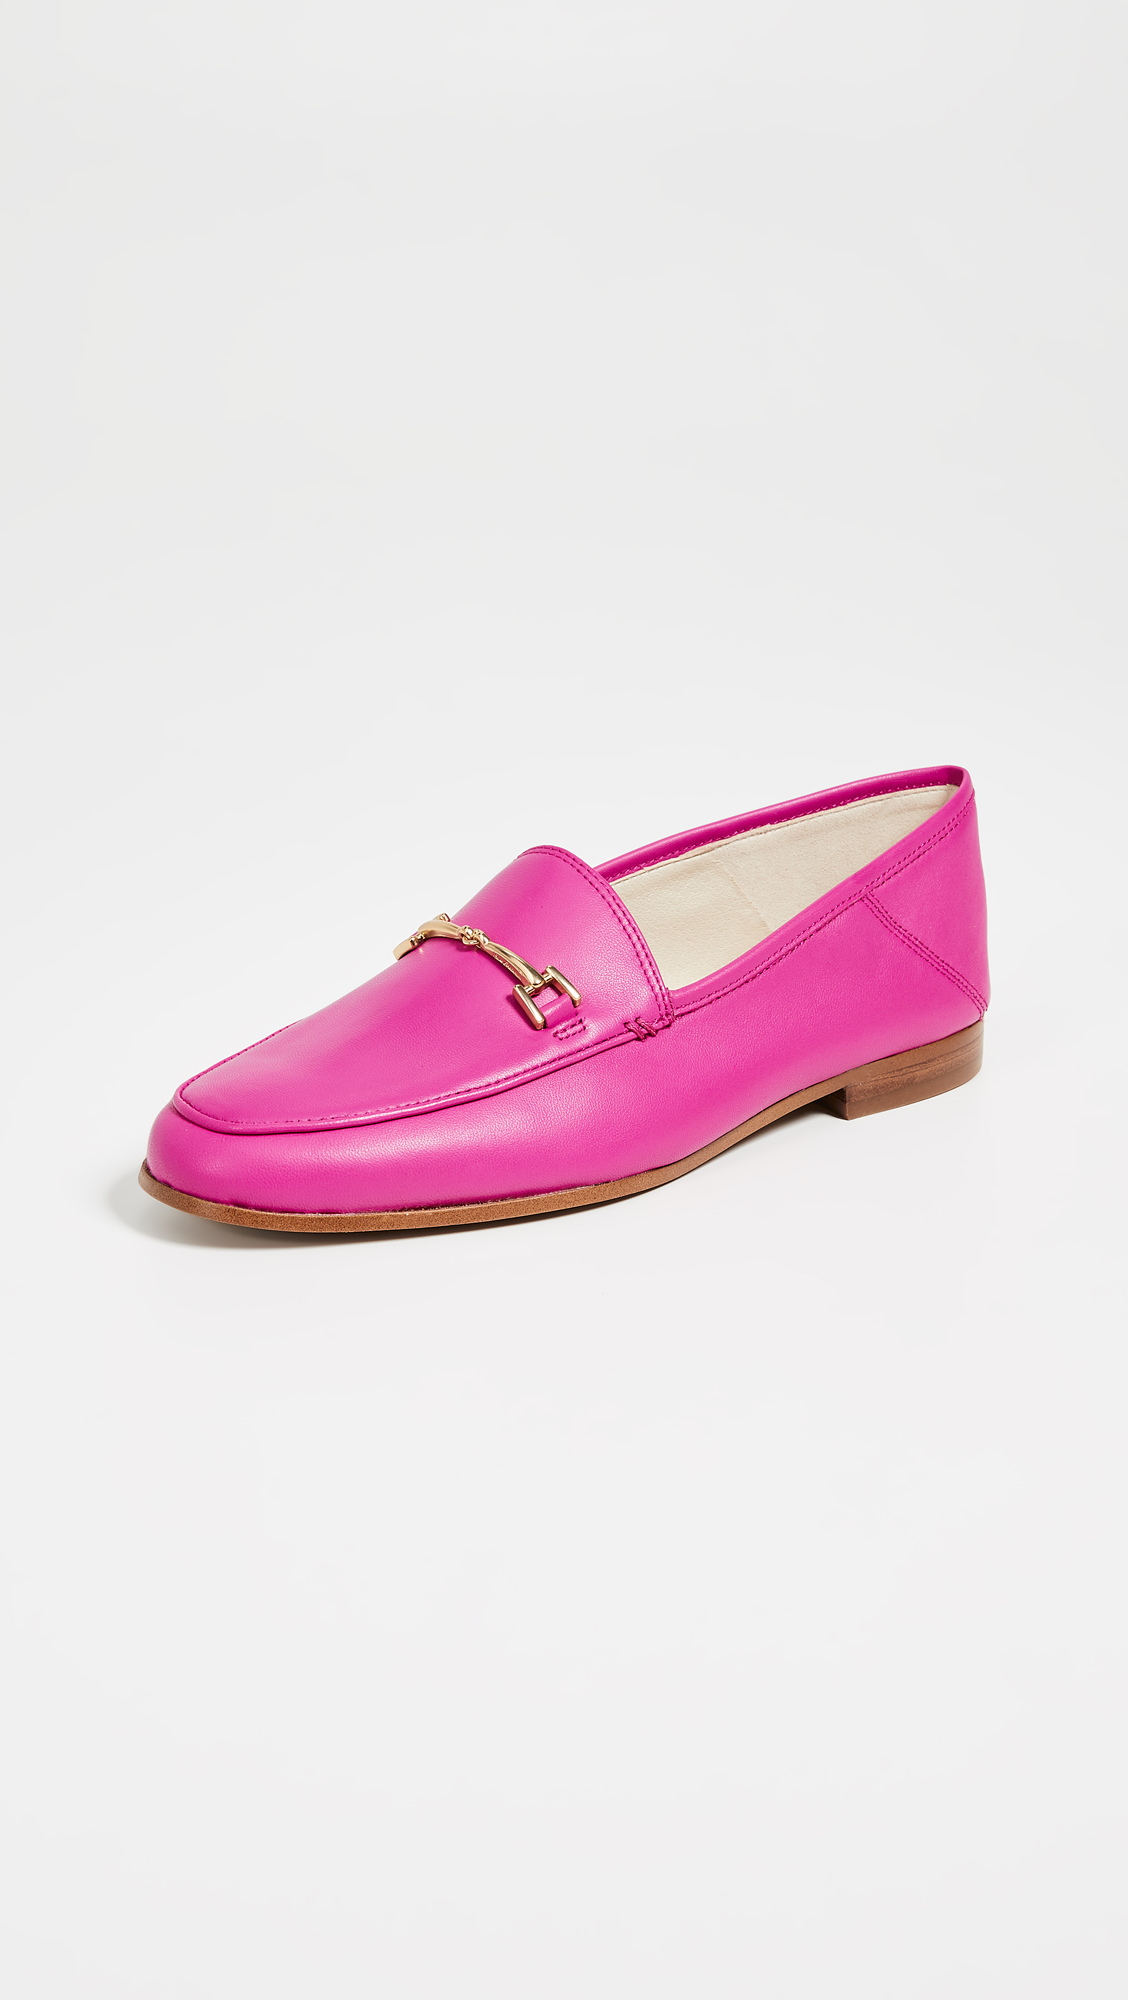 Retro Pink Loafers